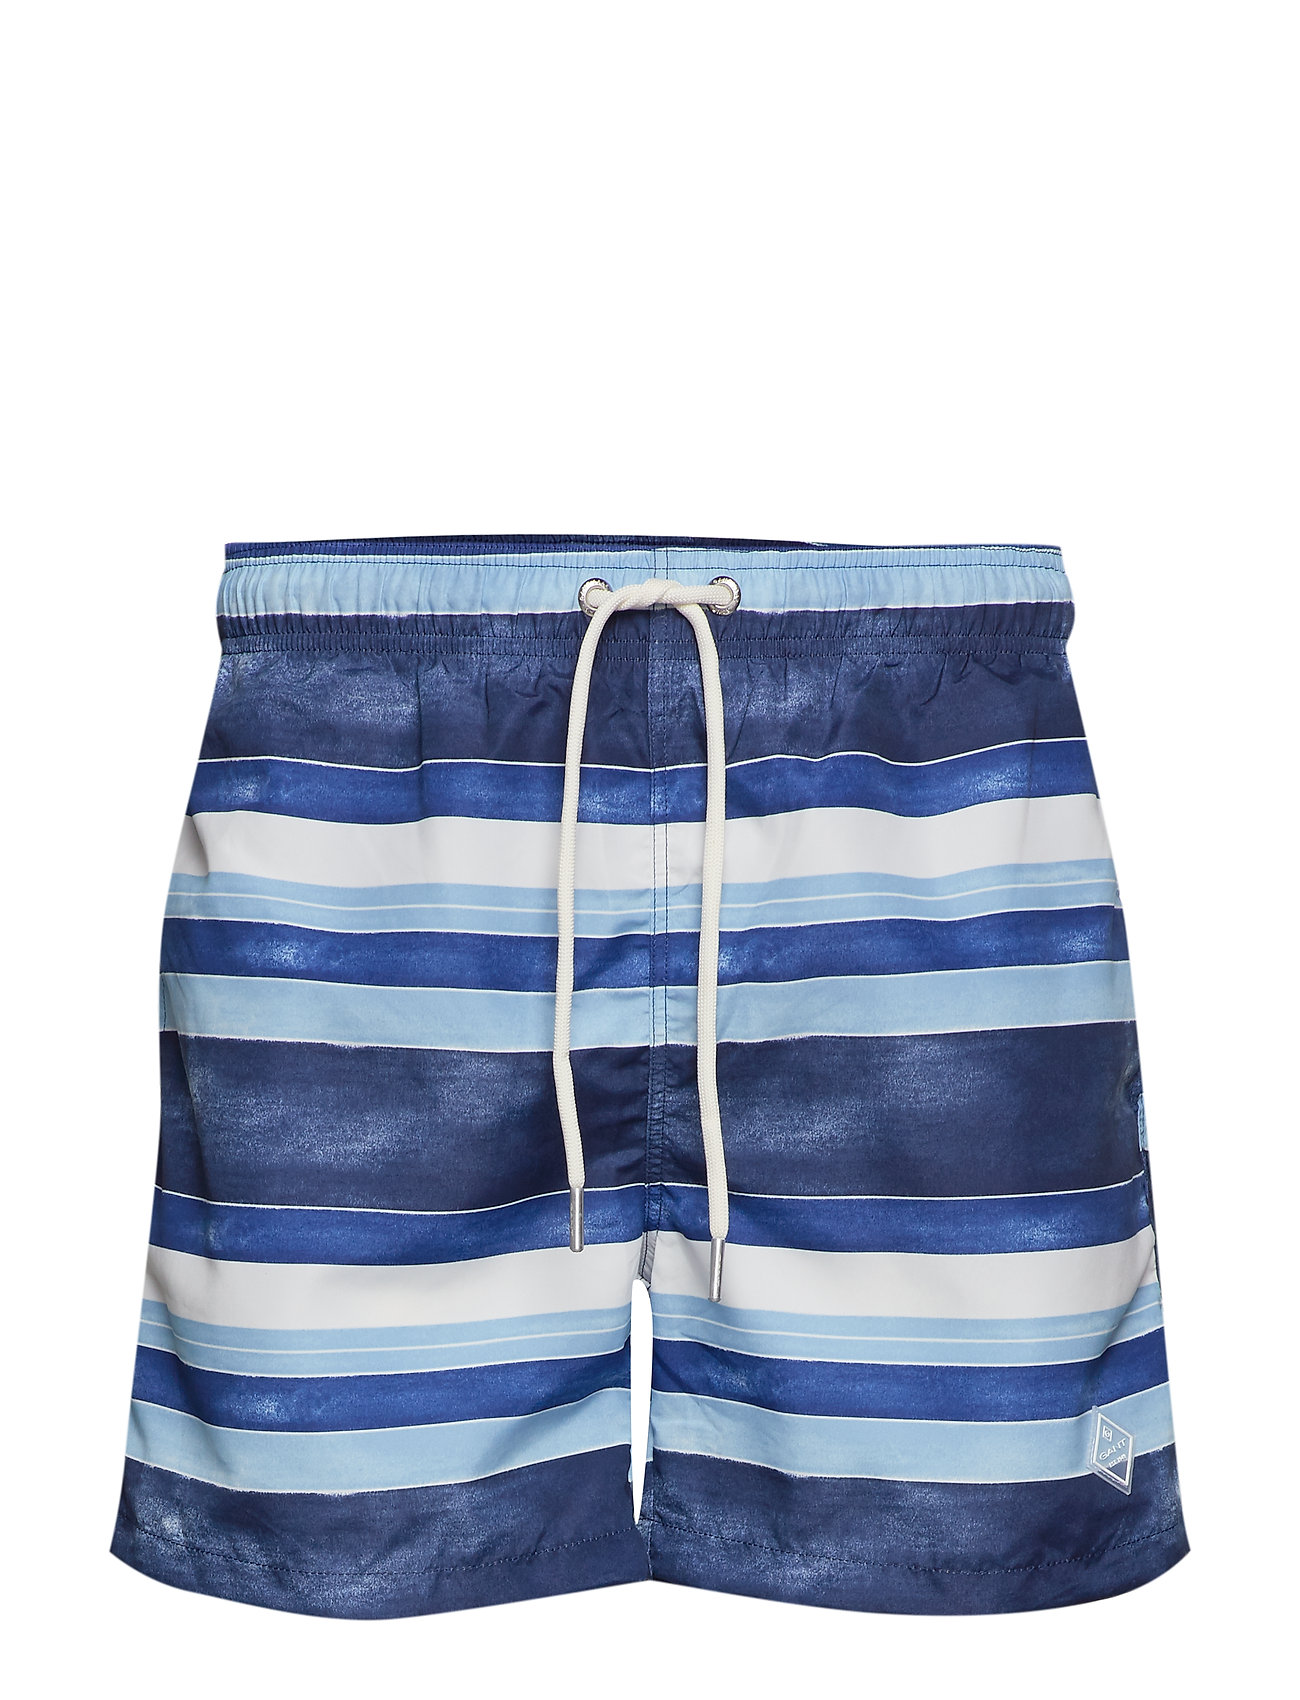 Gant SUNFADED STRIPES SWIM SHORTS C.F - PERSIAN BLUE